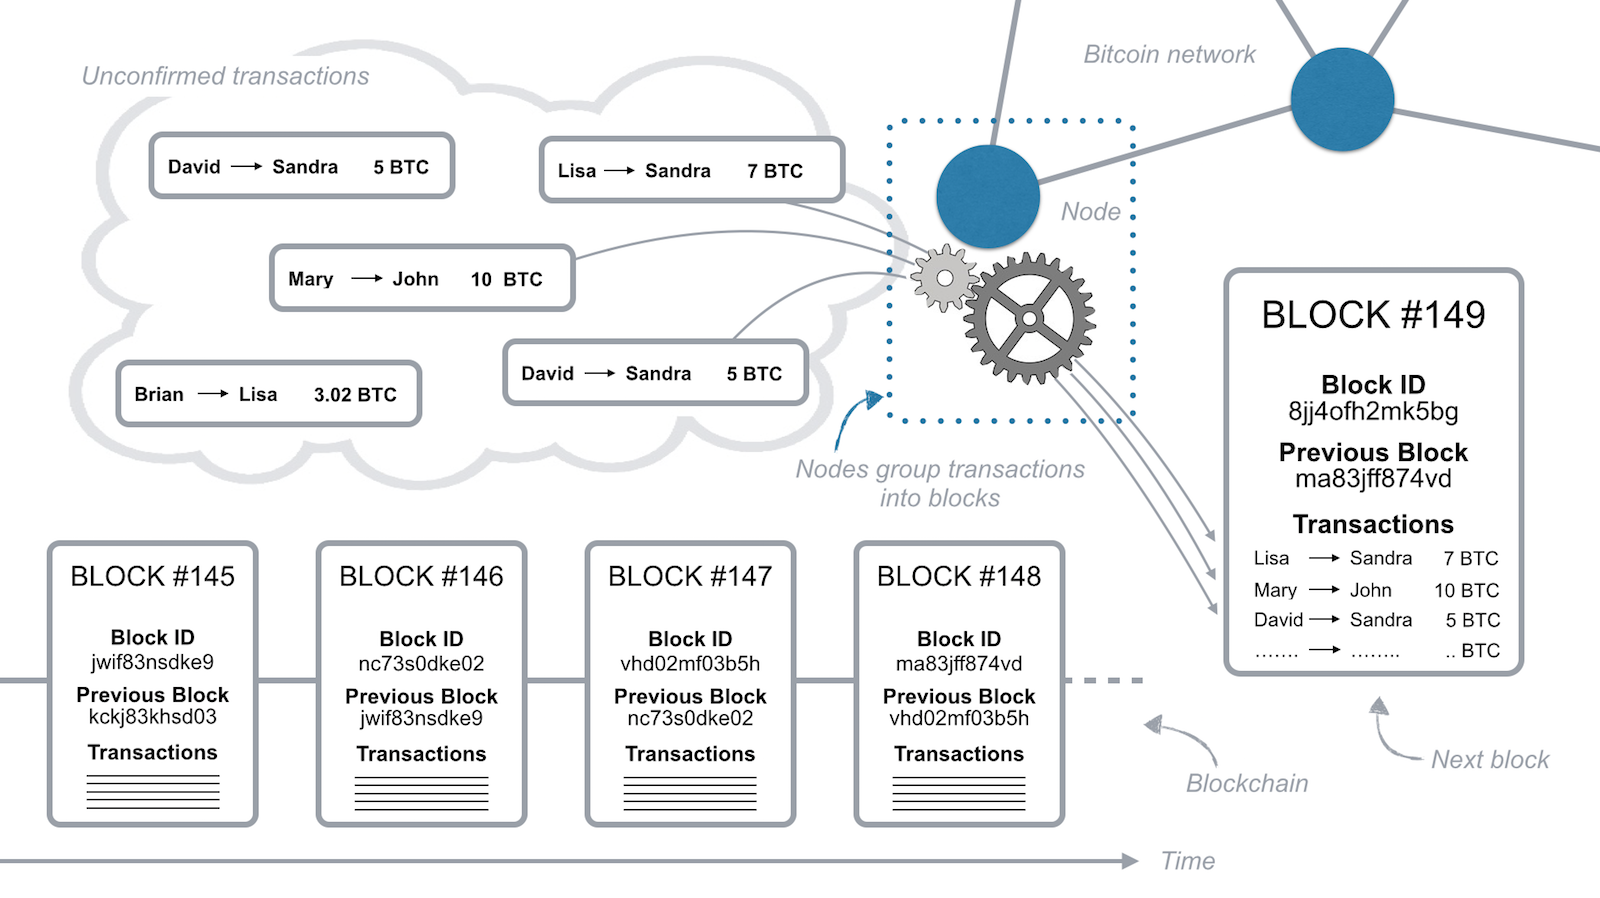 How Does the Blockchain Work? - Featured Stories - Medium